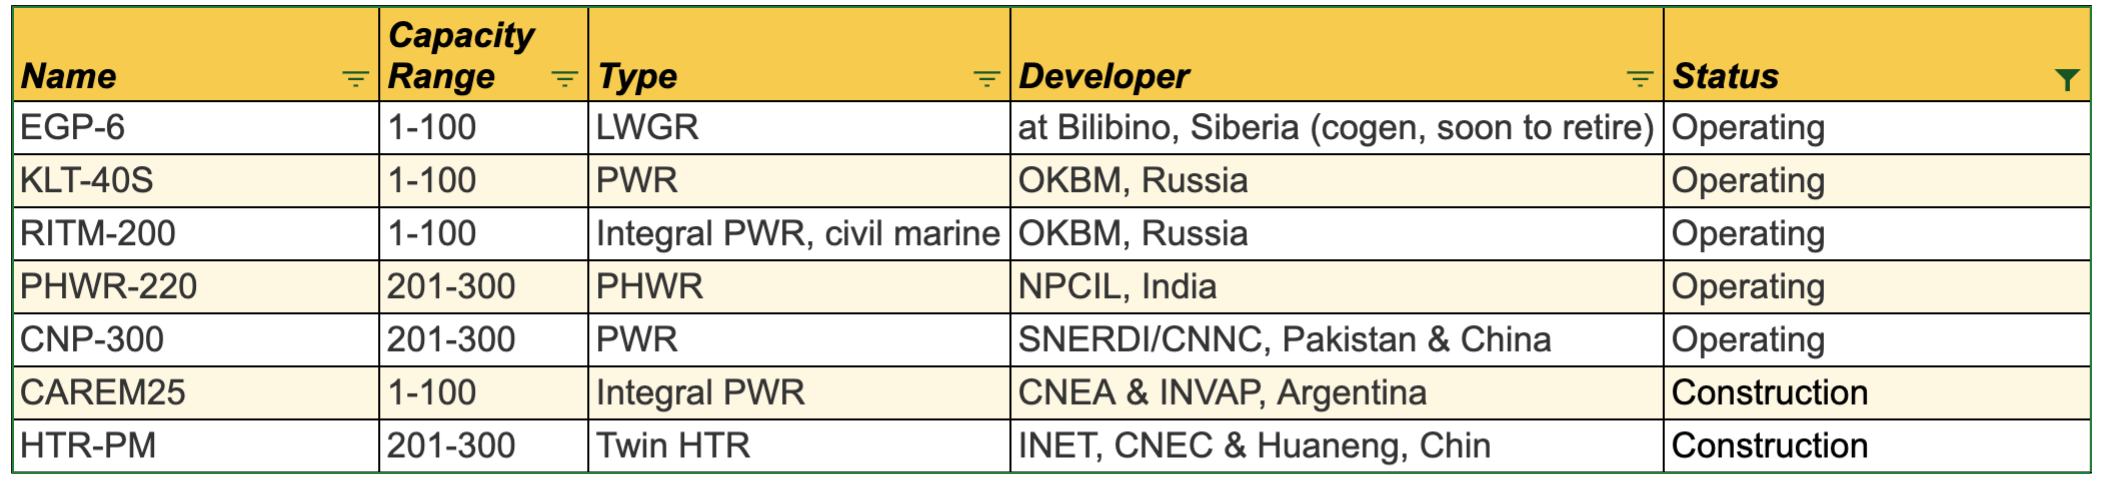 Table of operating and in construction SMRs